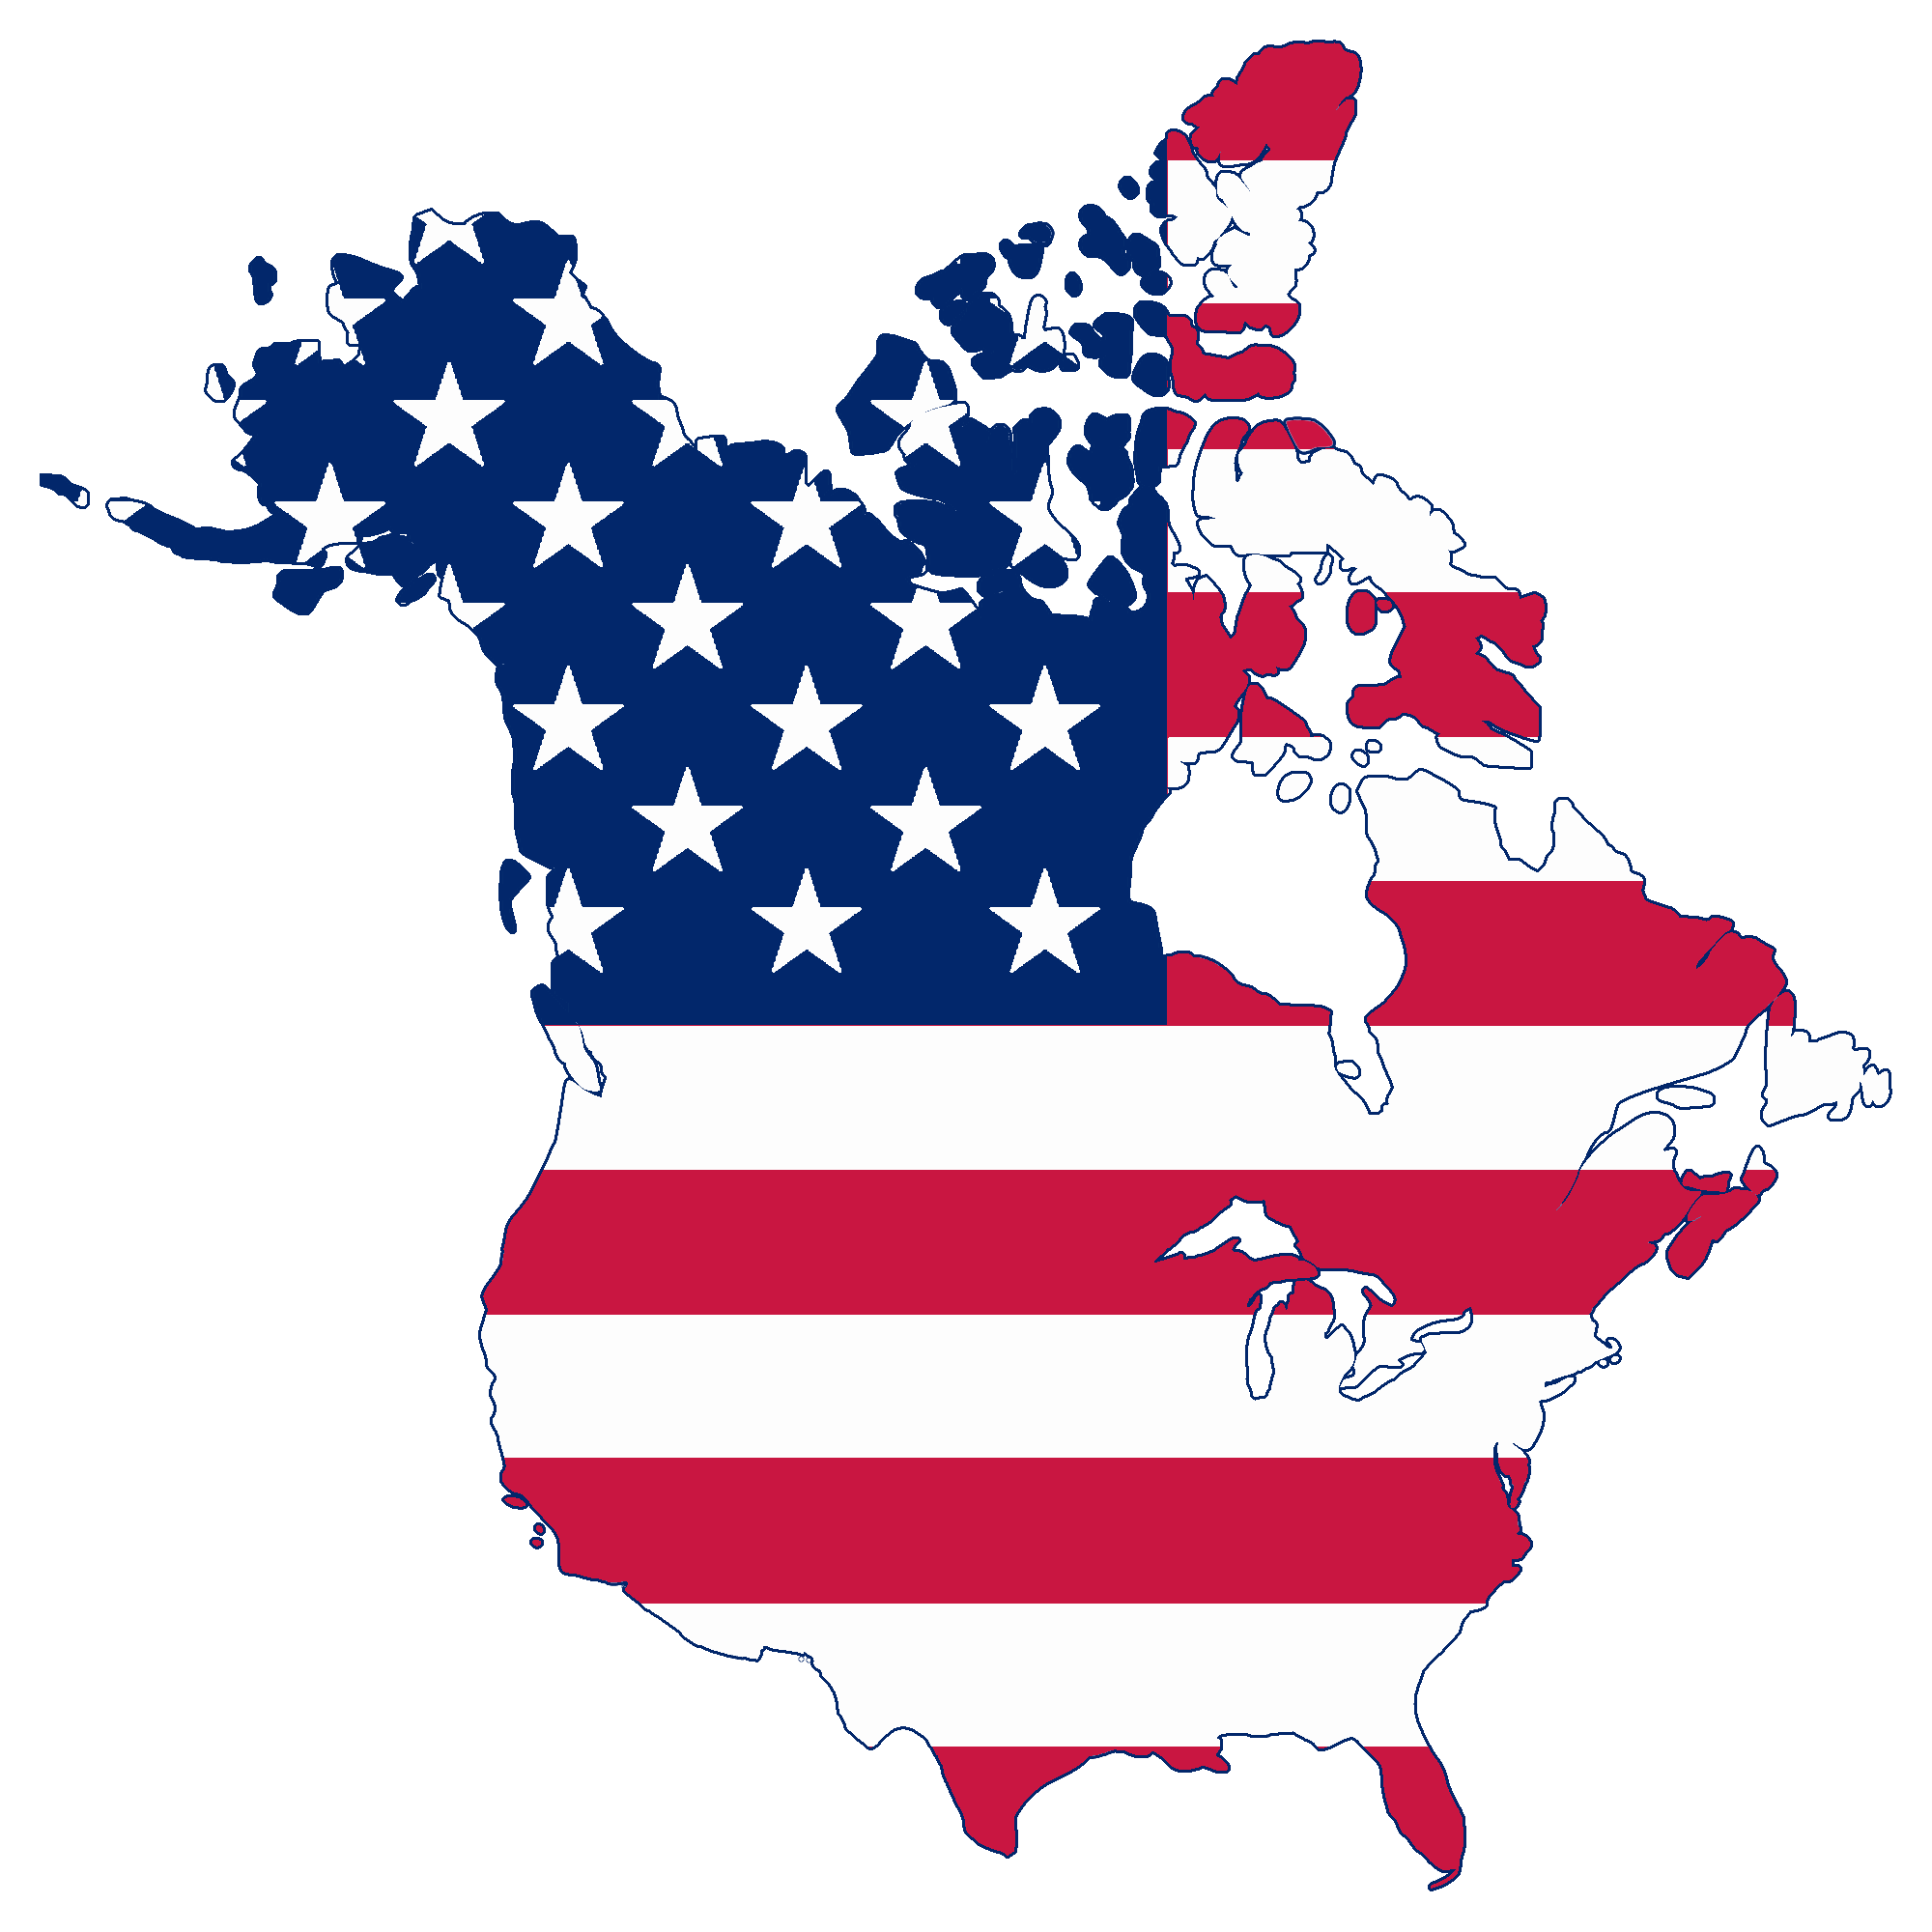 FileFlag Map Of Canada And United States American Flagpng - Map of canad and the us